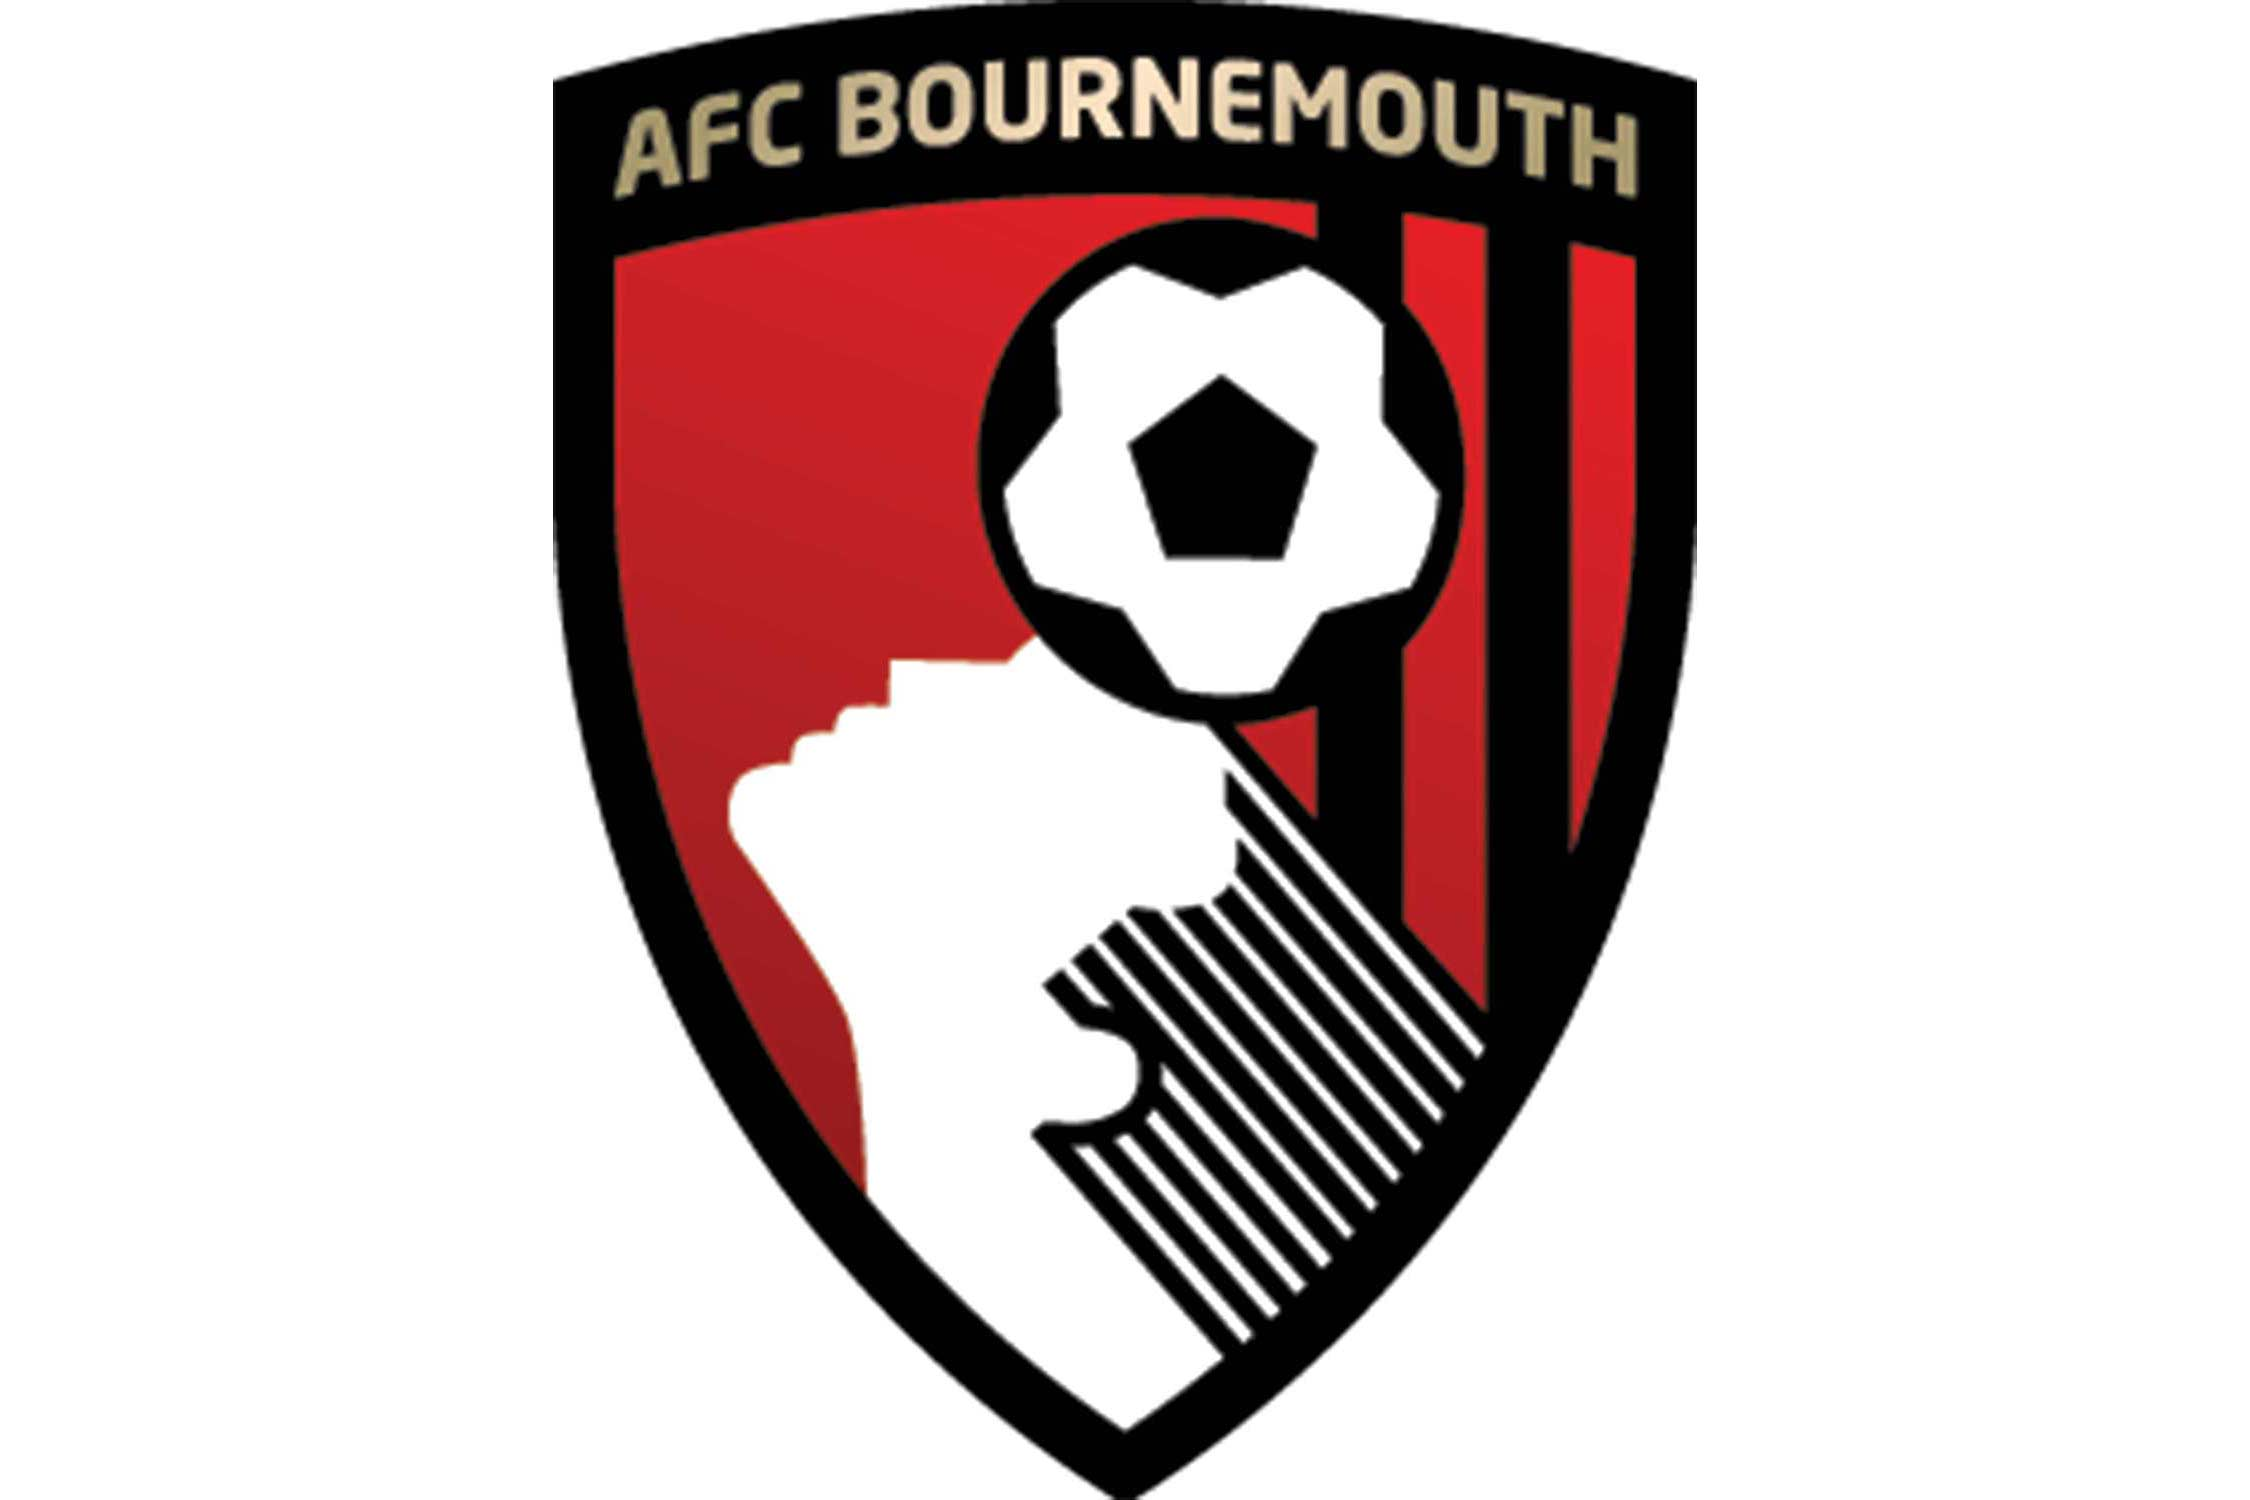 The head in the logo belongs to Dickie Dowsett, a forward who played for Bournemouth in the 1950s and 1960s. At time of writing, he is 85 years old.